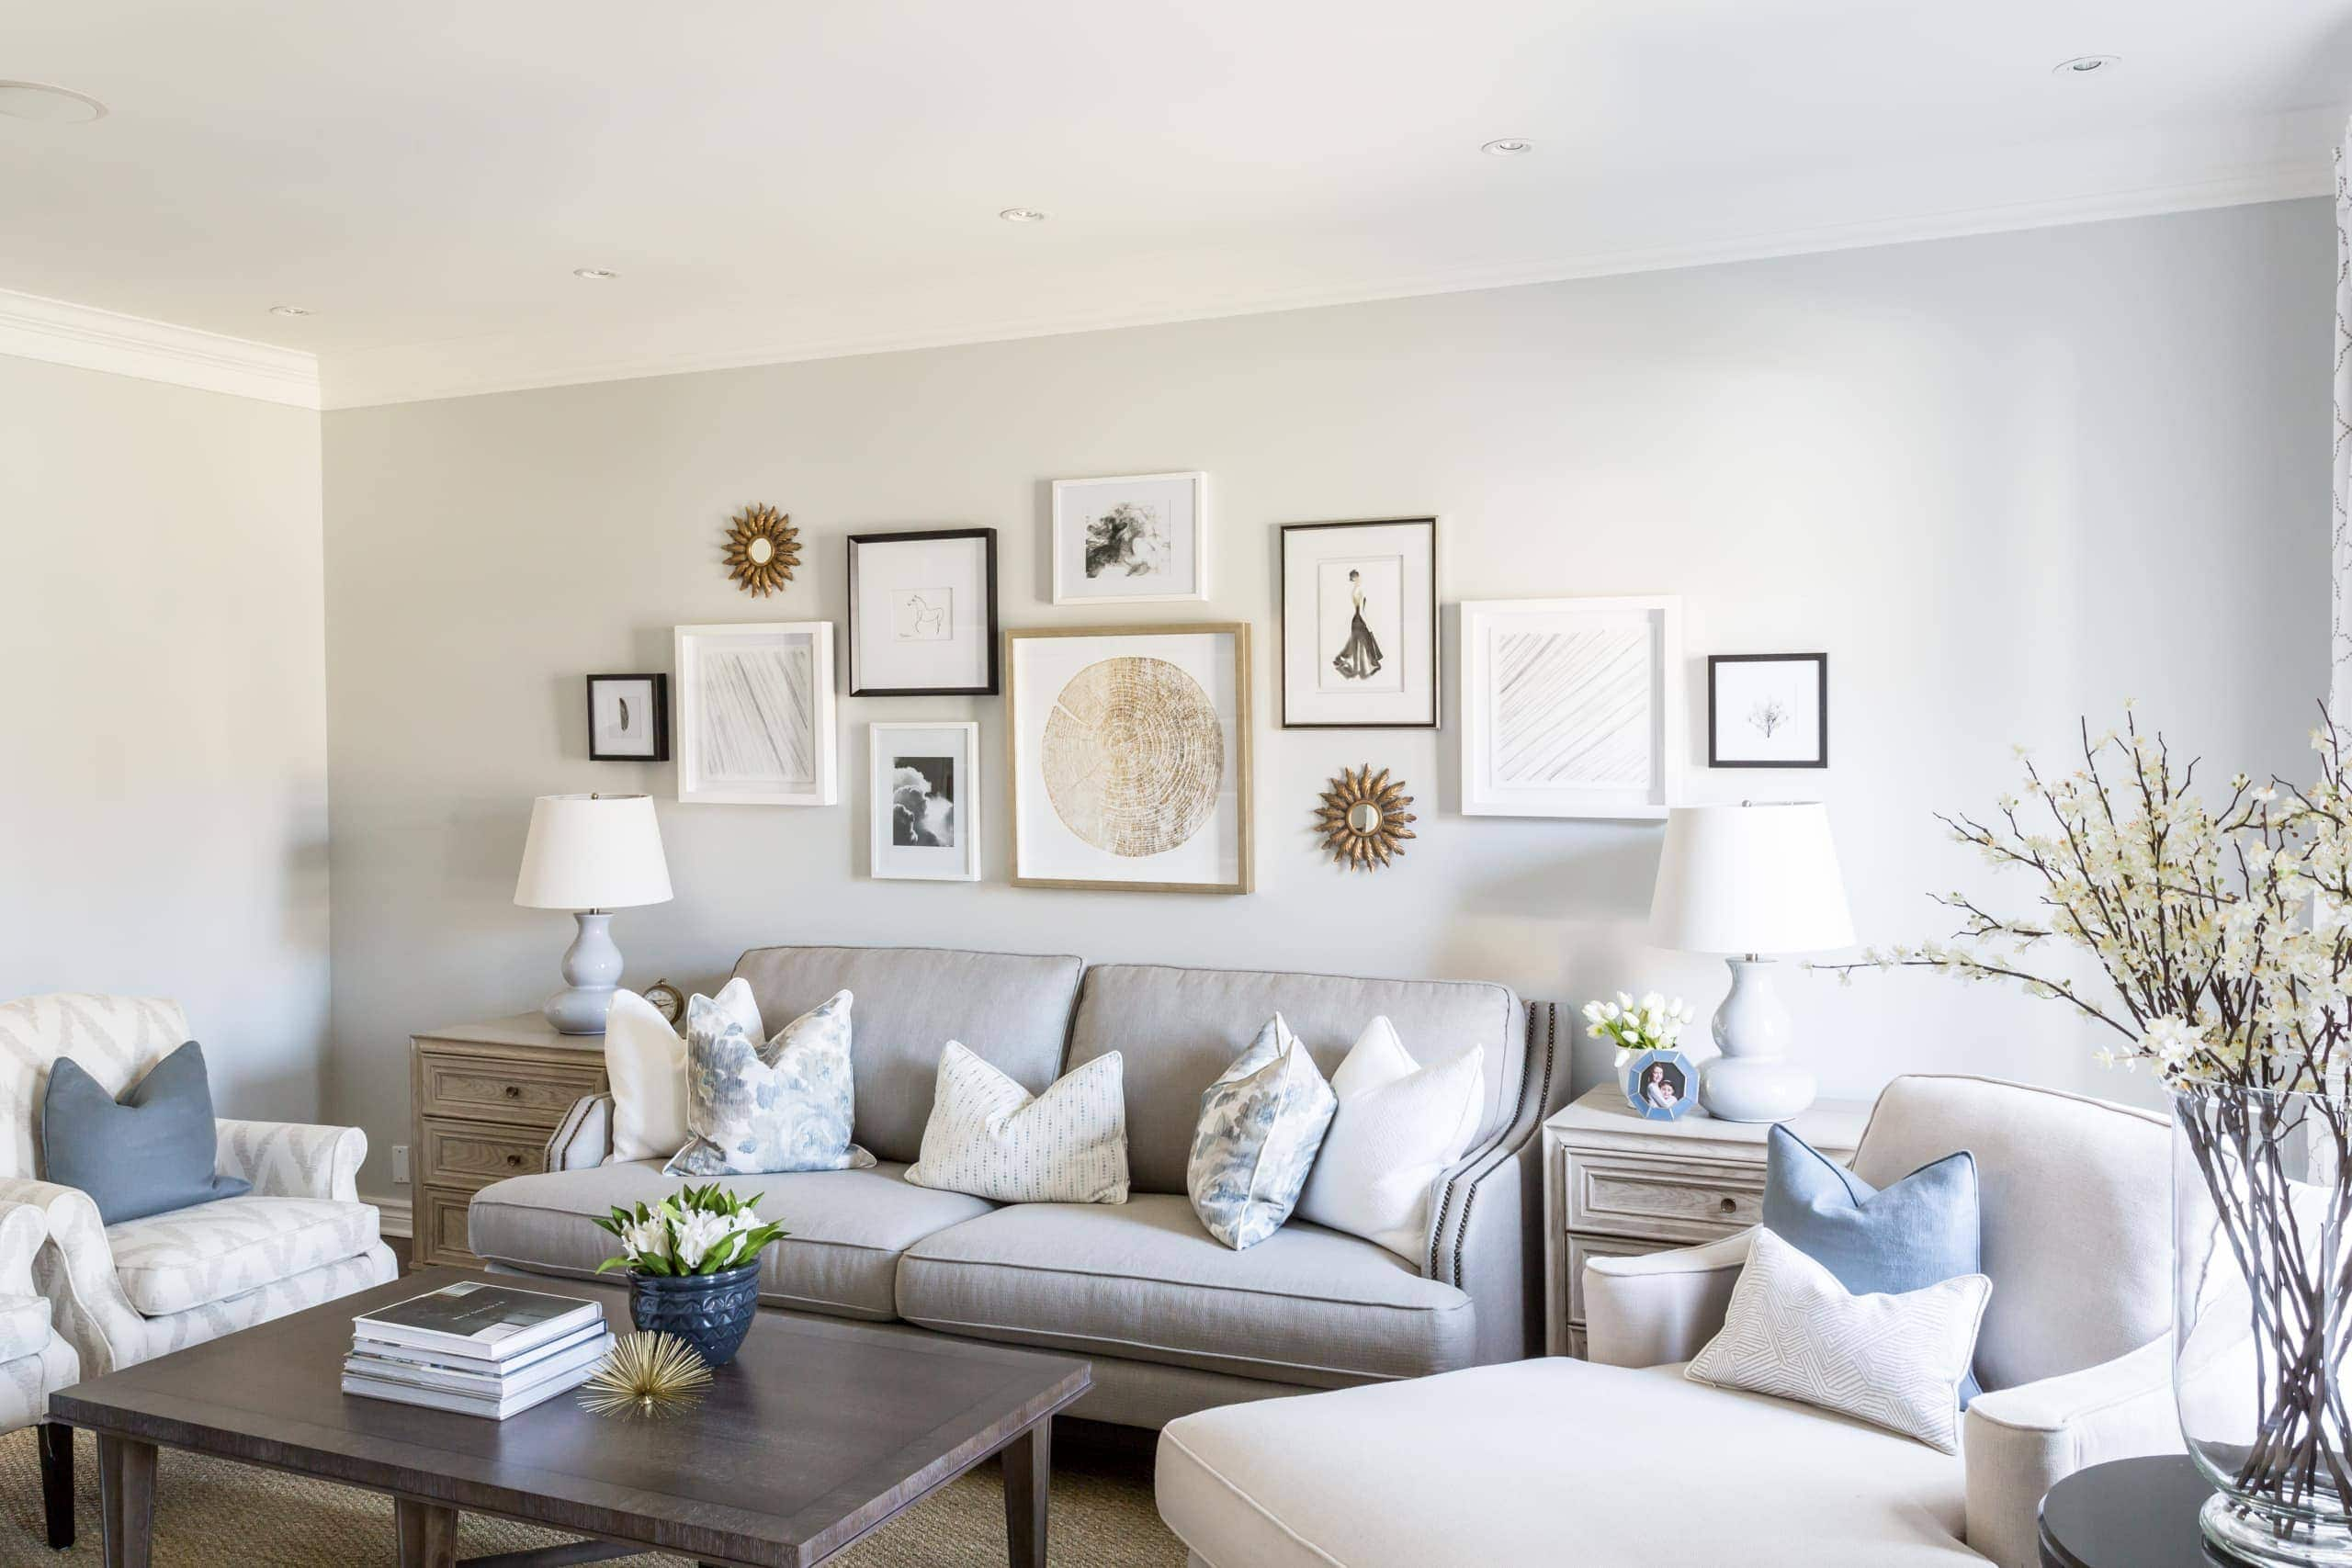 Gray couch with with eleven pictures above it